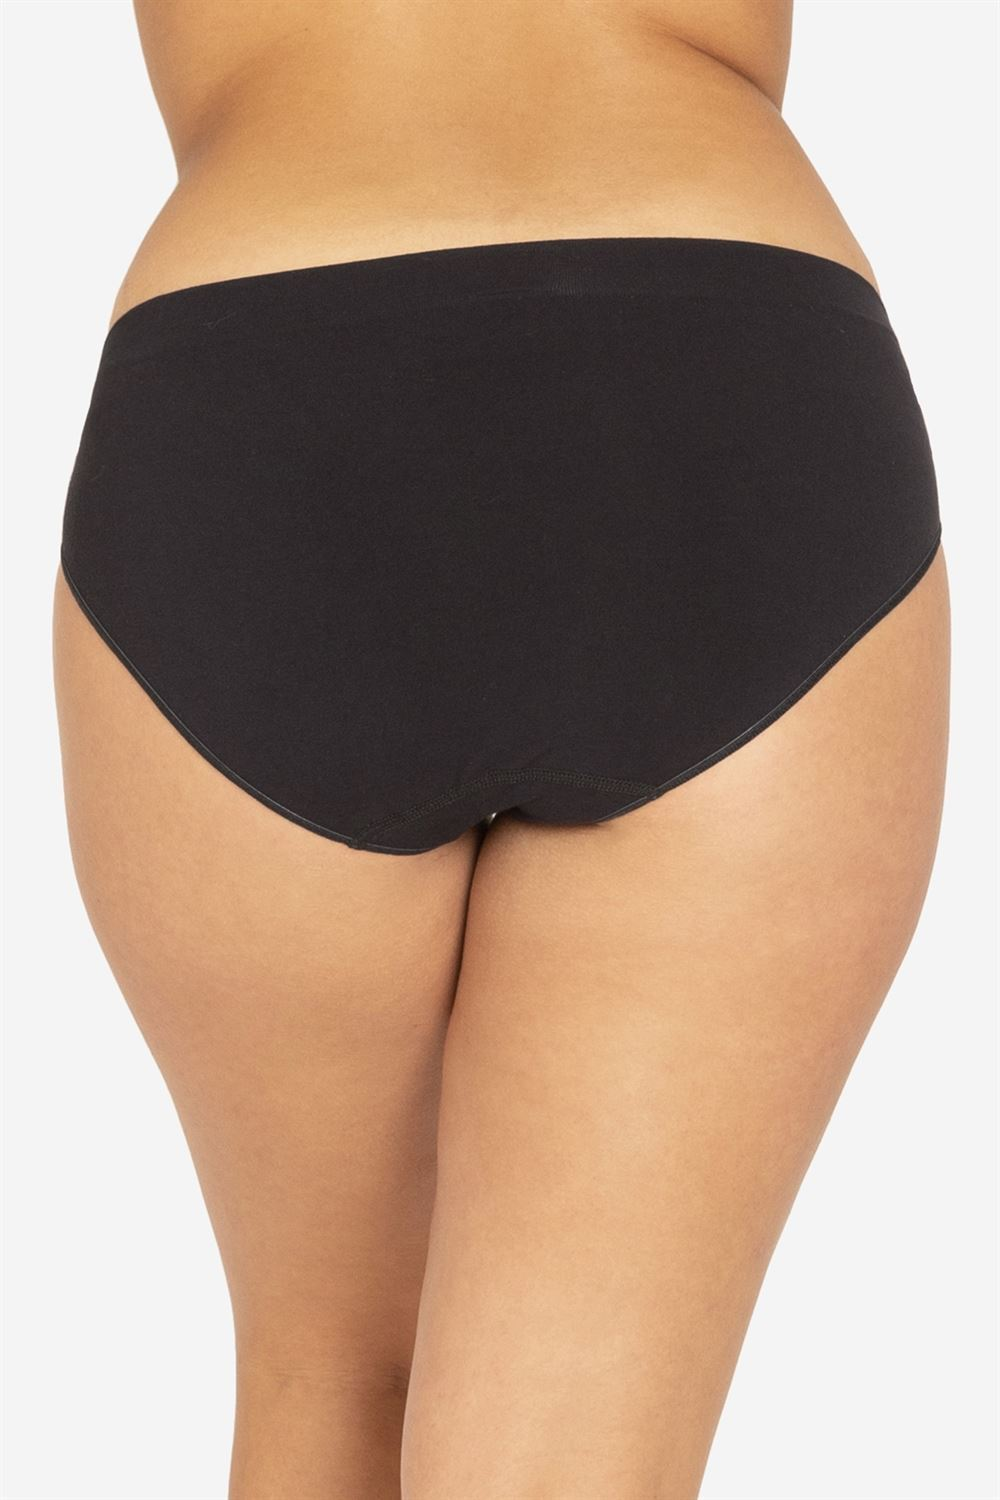 Black maternity panties in soft bamboo fibers - Seen from behind